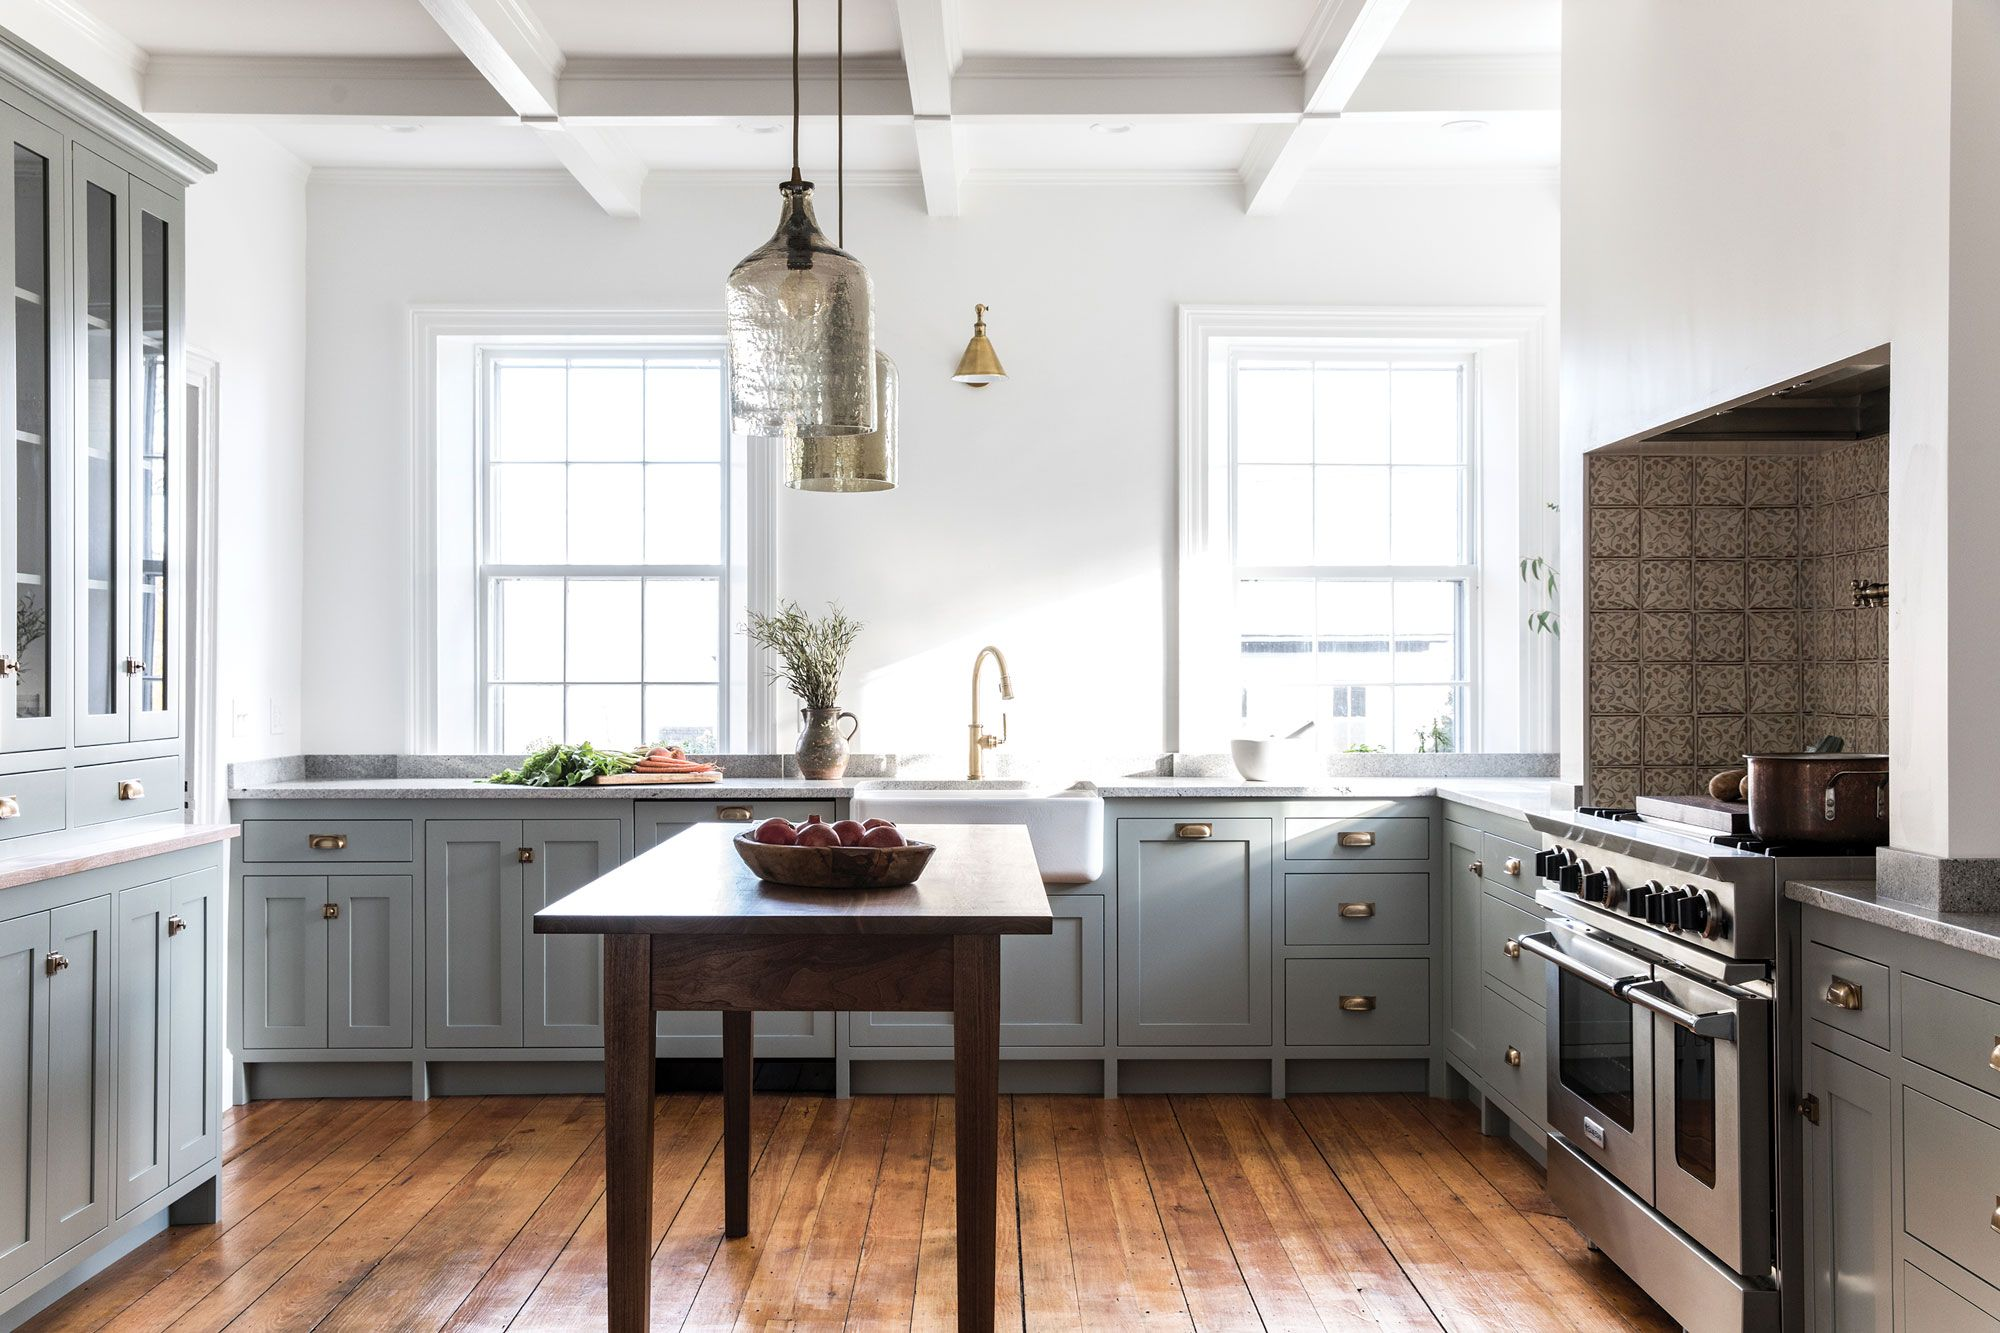 2019 Maine Homes Design Awards Official Winners Kitchen Design Timeless Kitchen Shaker Style Kitchens